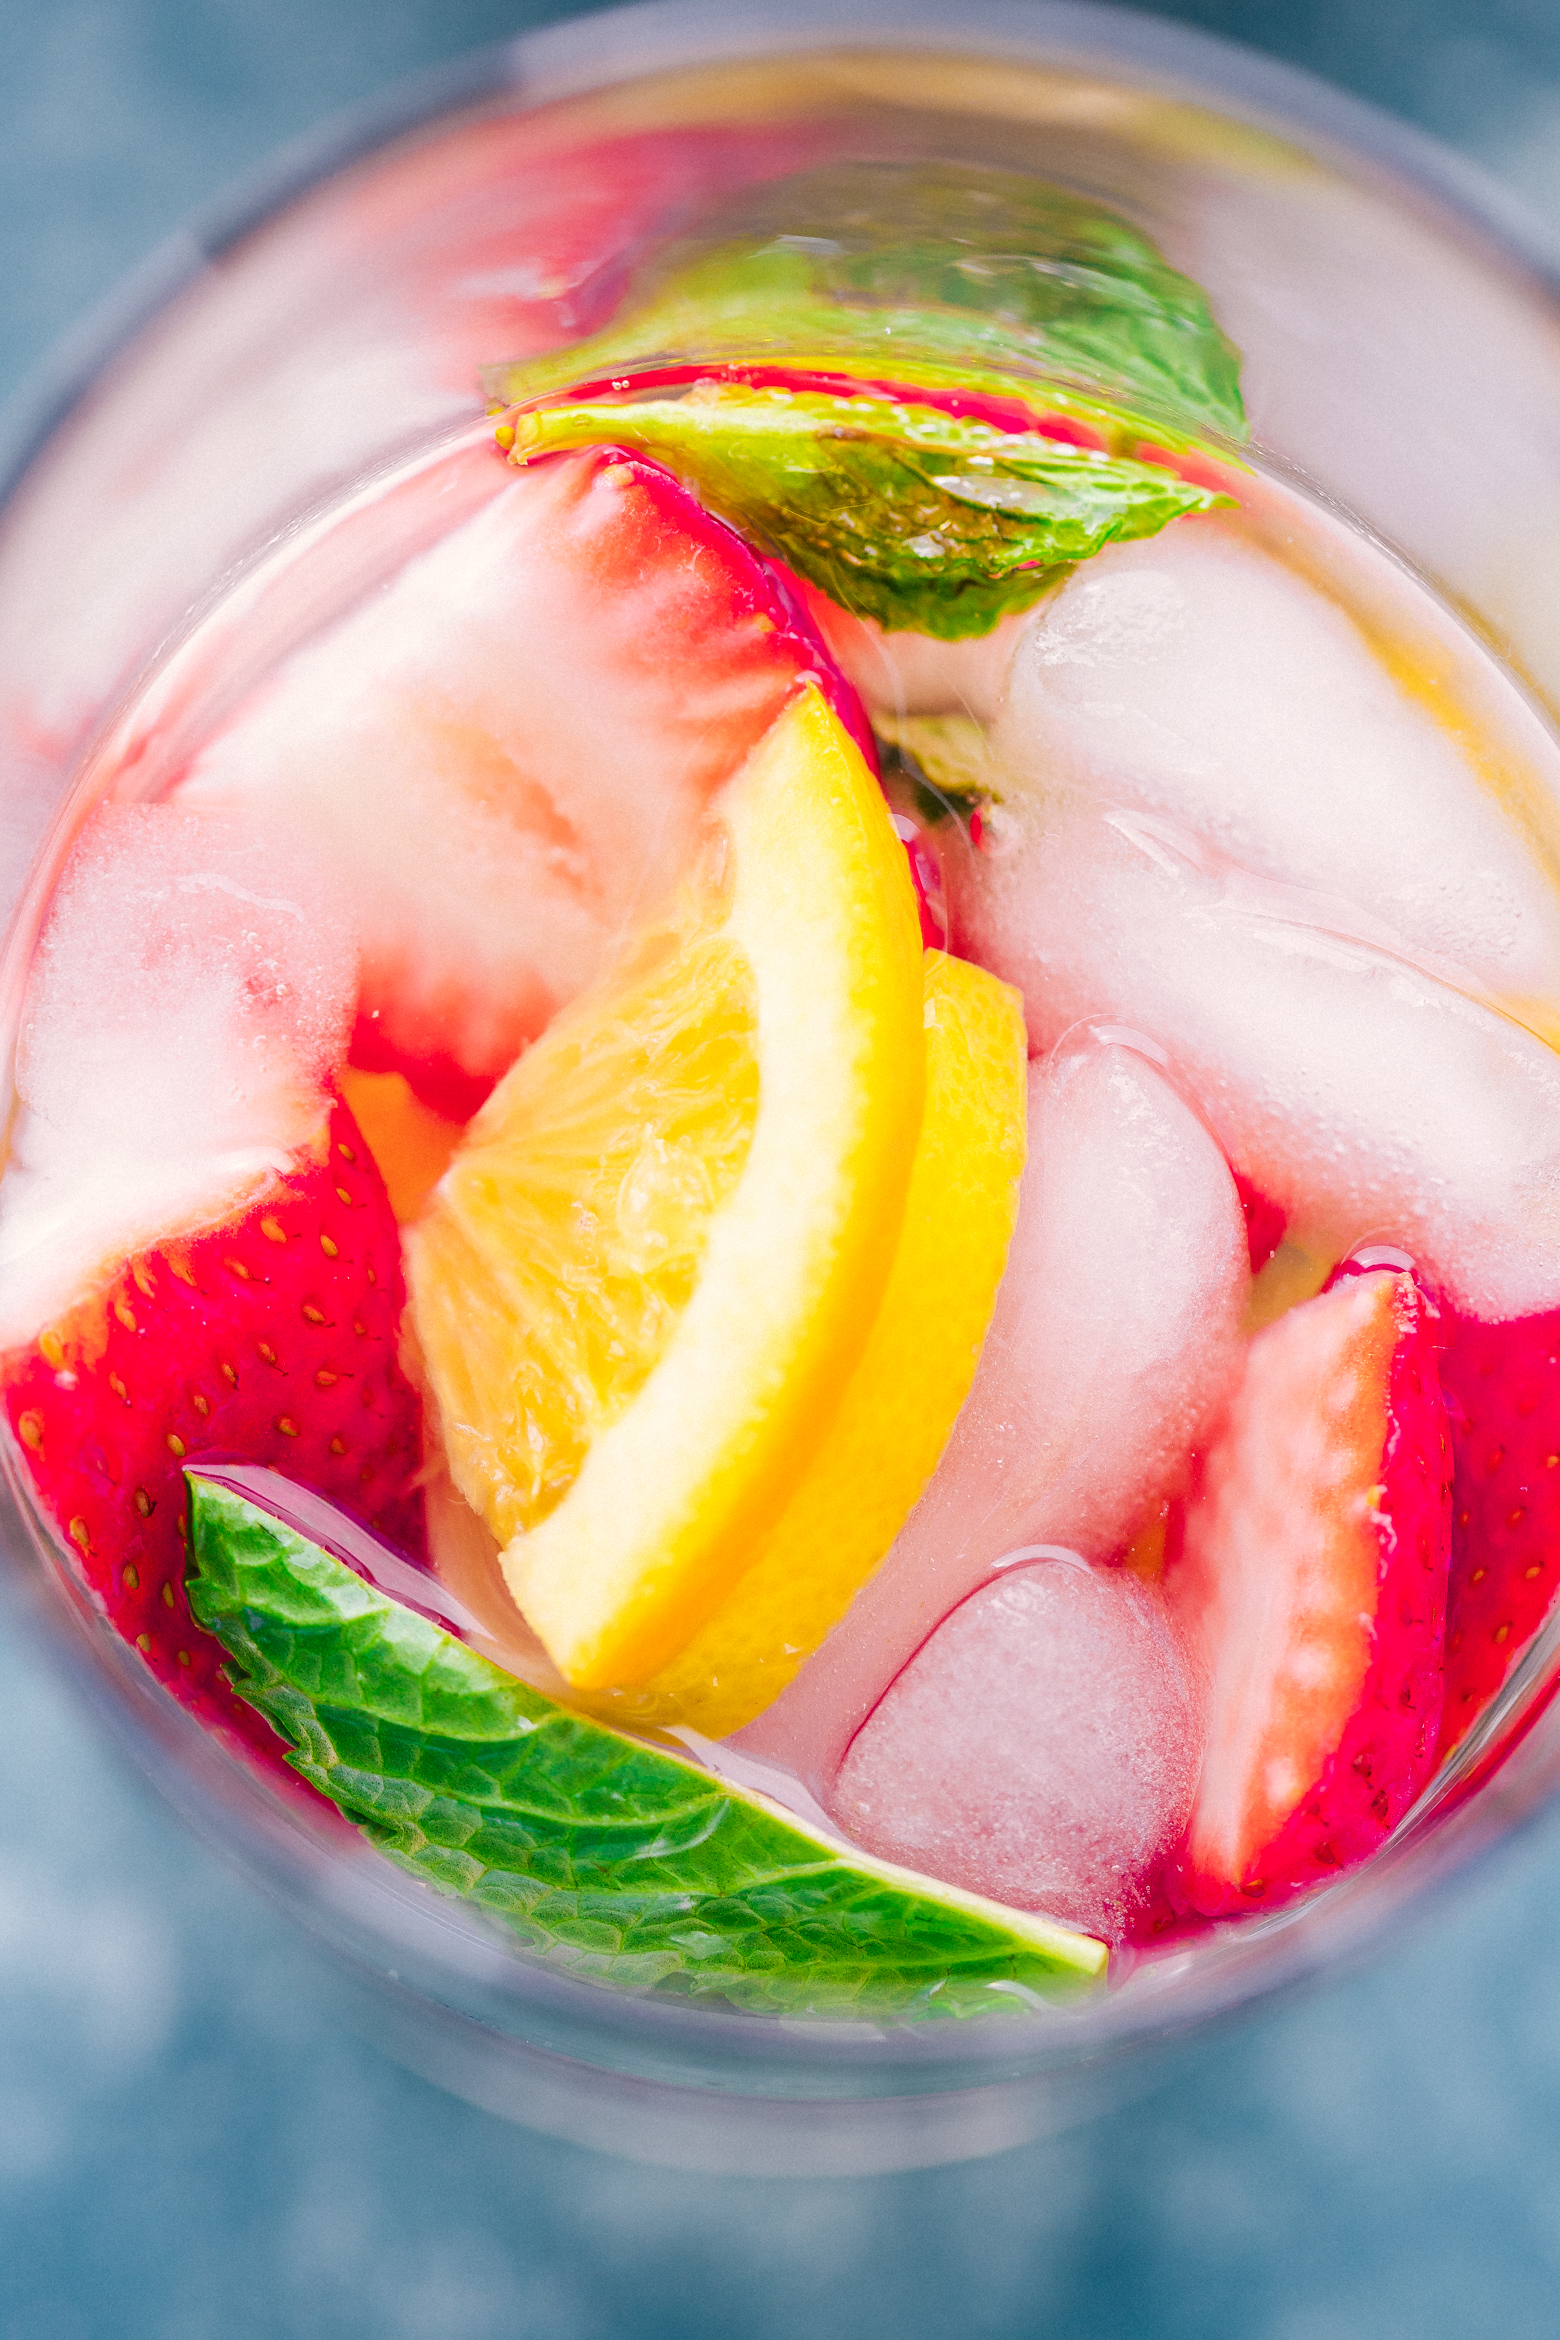 Strawberry Detox Water with fresh lemon wedges, fresh cut strawberries, and mint leaves, a great cleanse by The Food Cafe.